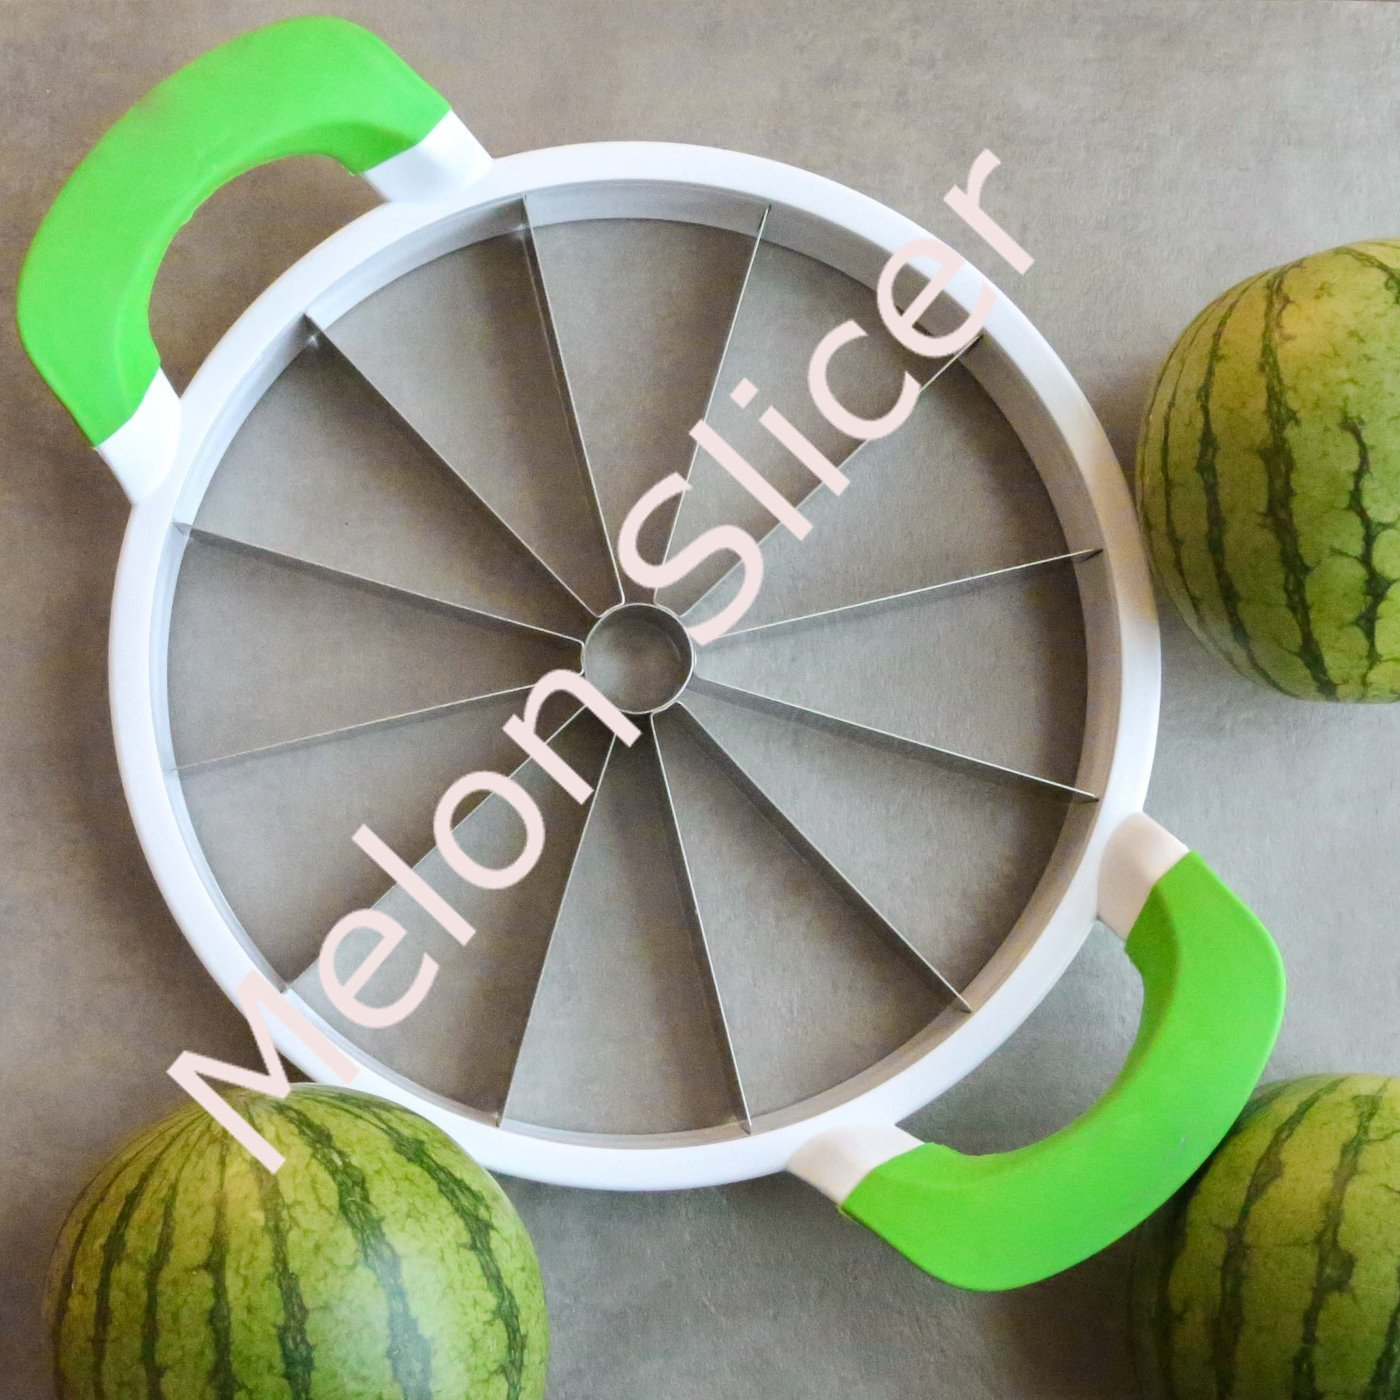 Watermelon Slicer with Comfort Handle,Home Stainless Steel Fruit Slicer Cutter Peeler Corer Server for Cantaloup Melon,Pineapple,Honeydew,Simply get 12-11inch/28cm Extra Large